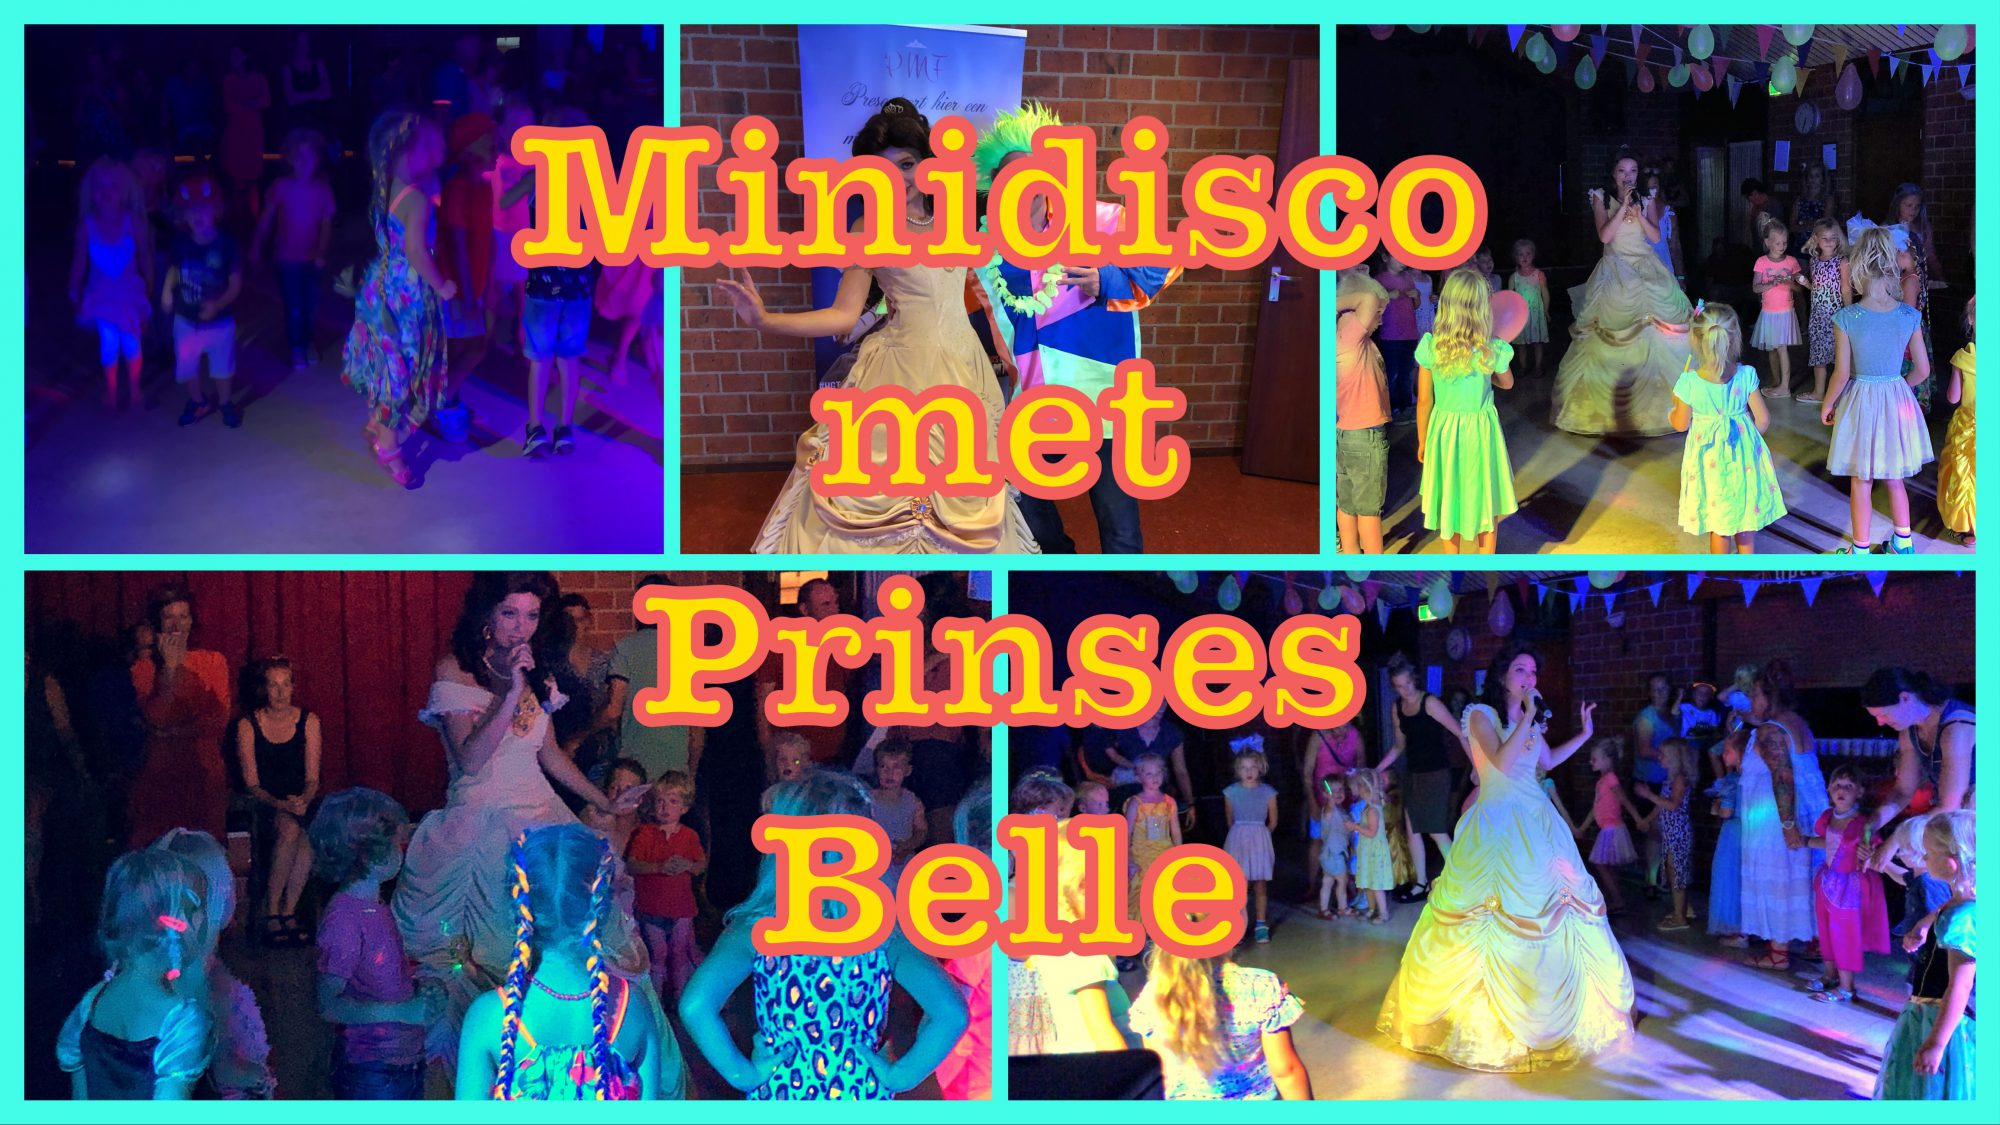 Minidisco met Prinses Belle